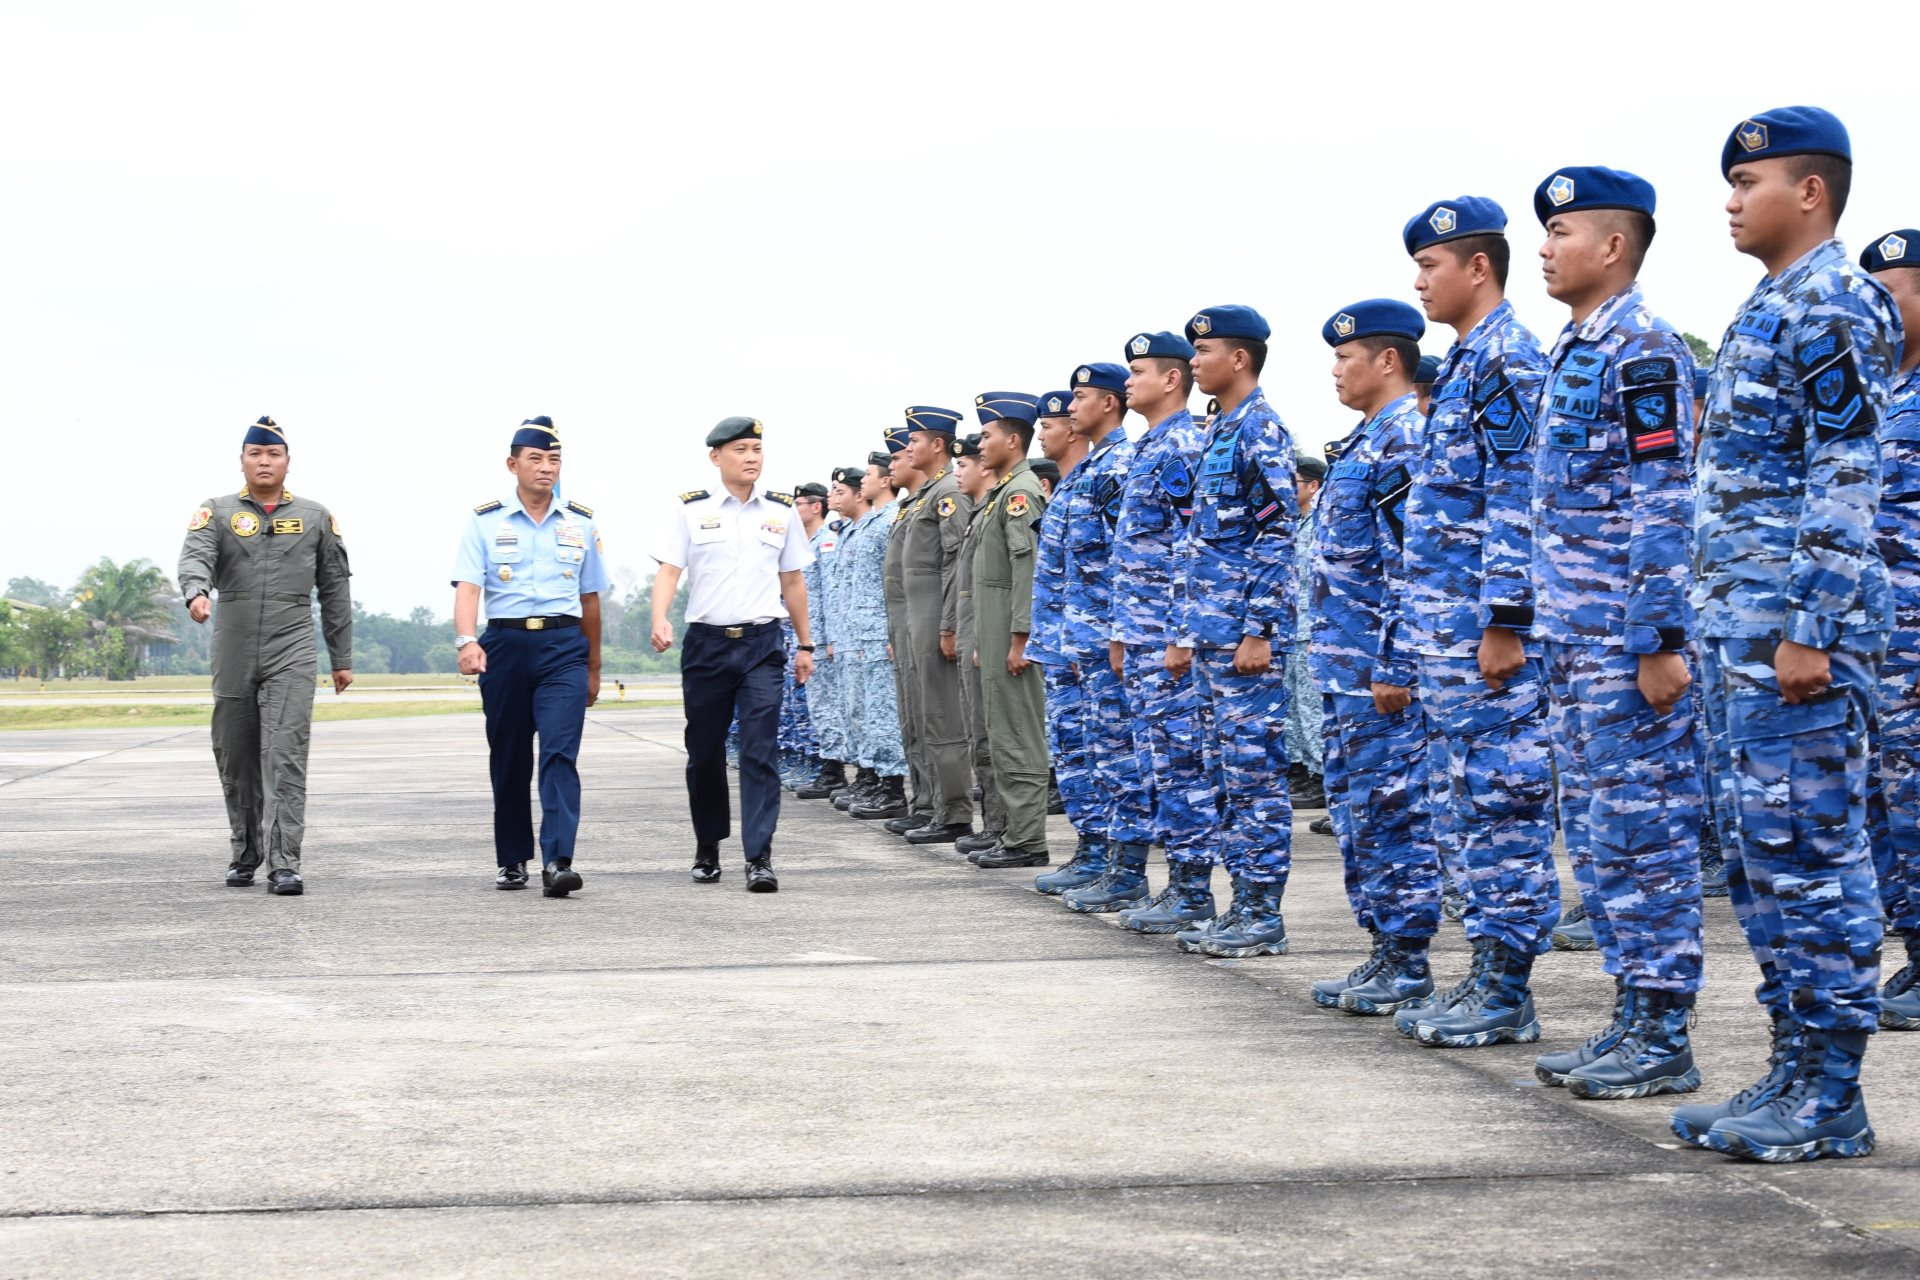 The RSAF's Chief of Air Force Major-General (MG) Mervyn Tan and TNI AU's Chief of Staff Air Chief Marshal Yuyu Sutisna reviewing the parade during the closing ceremony of Exercise Elang Indopura 2018